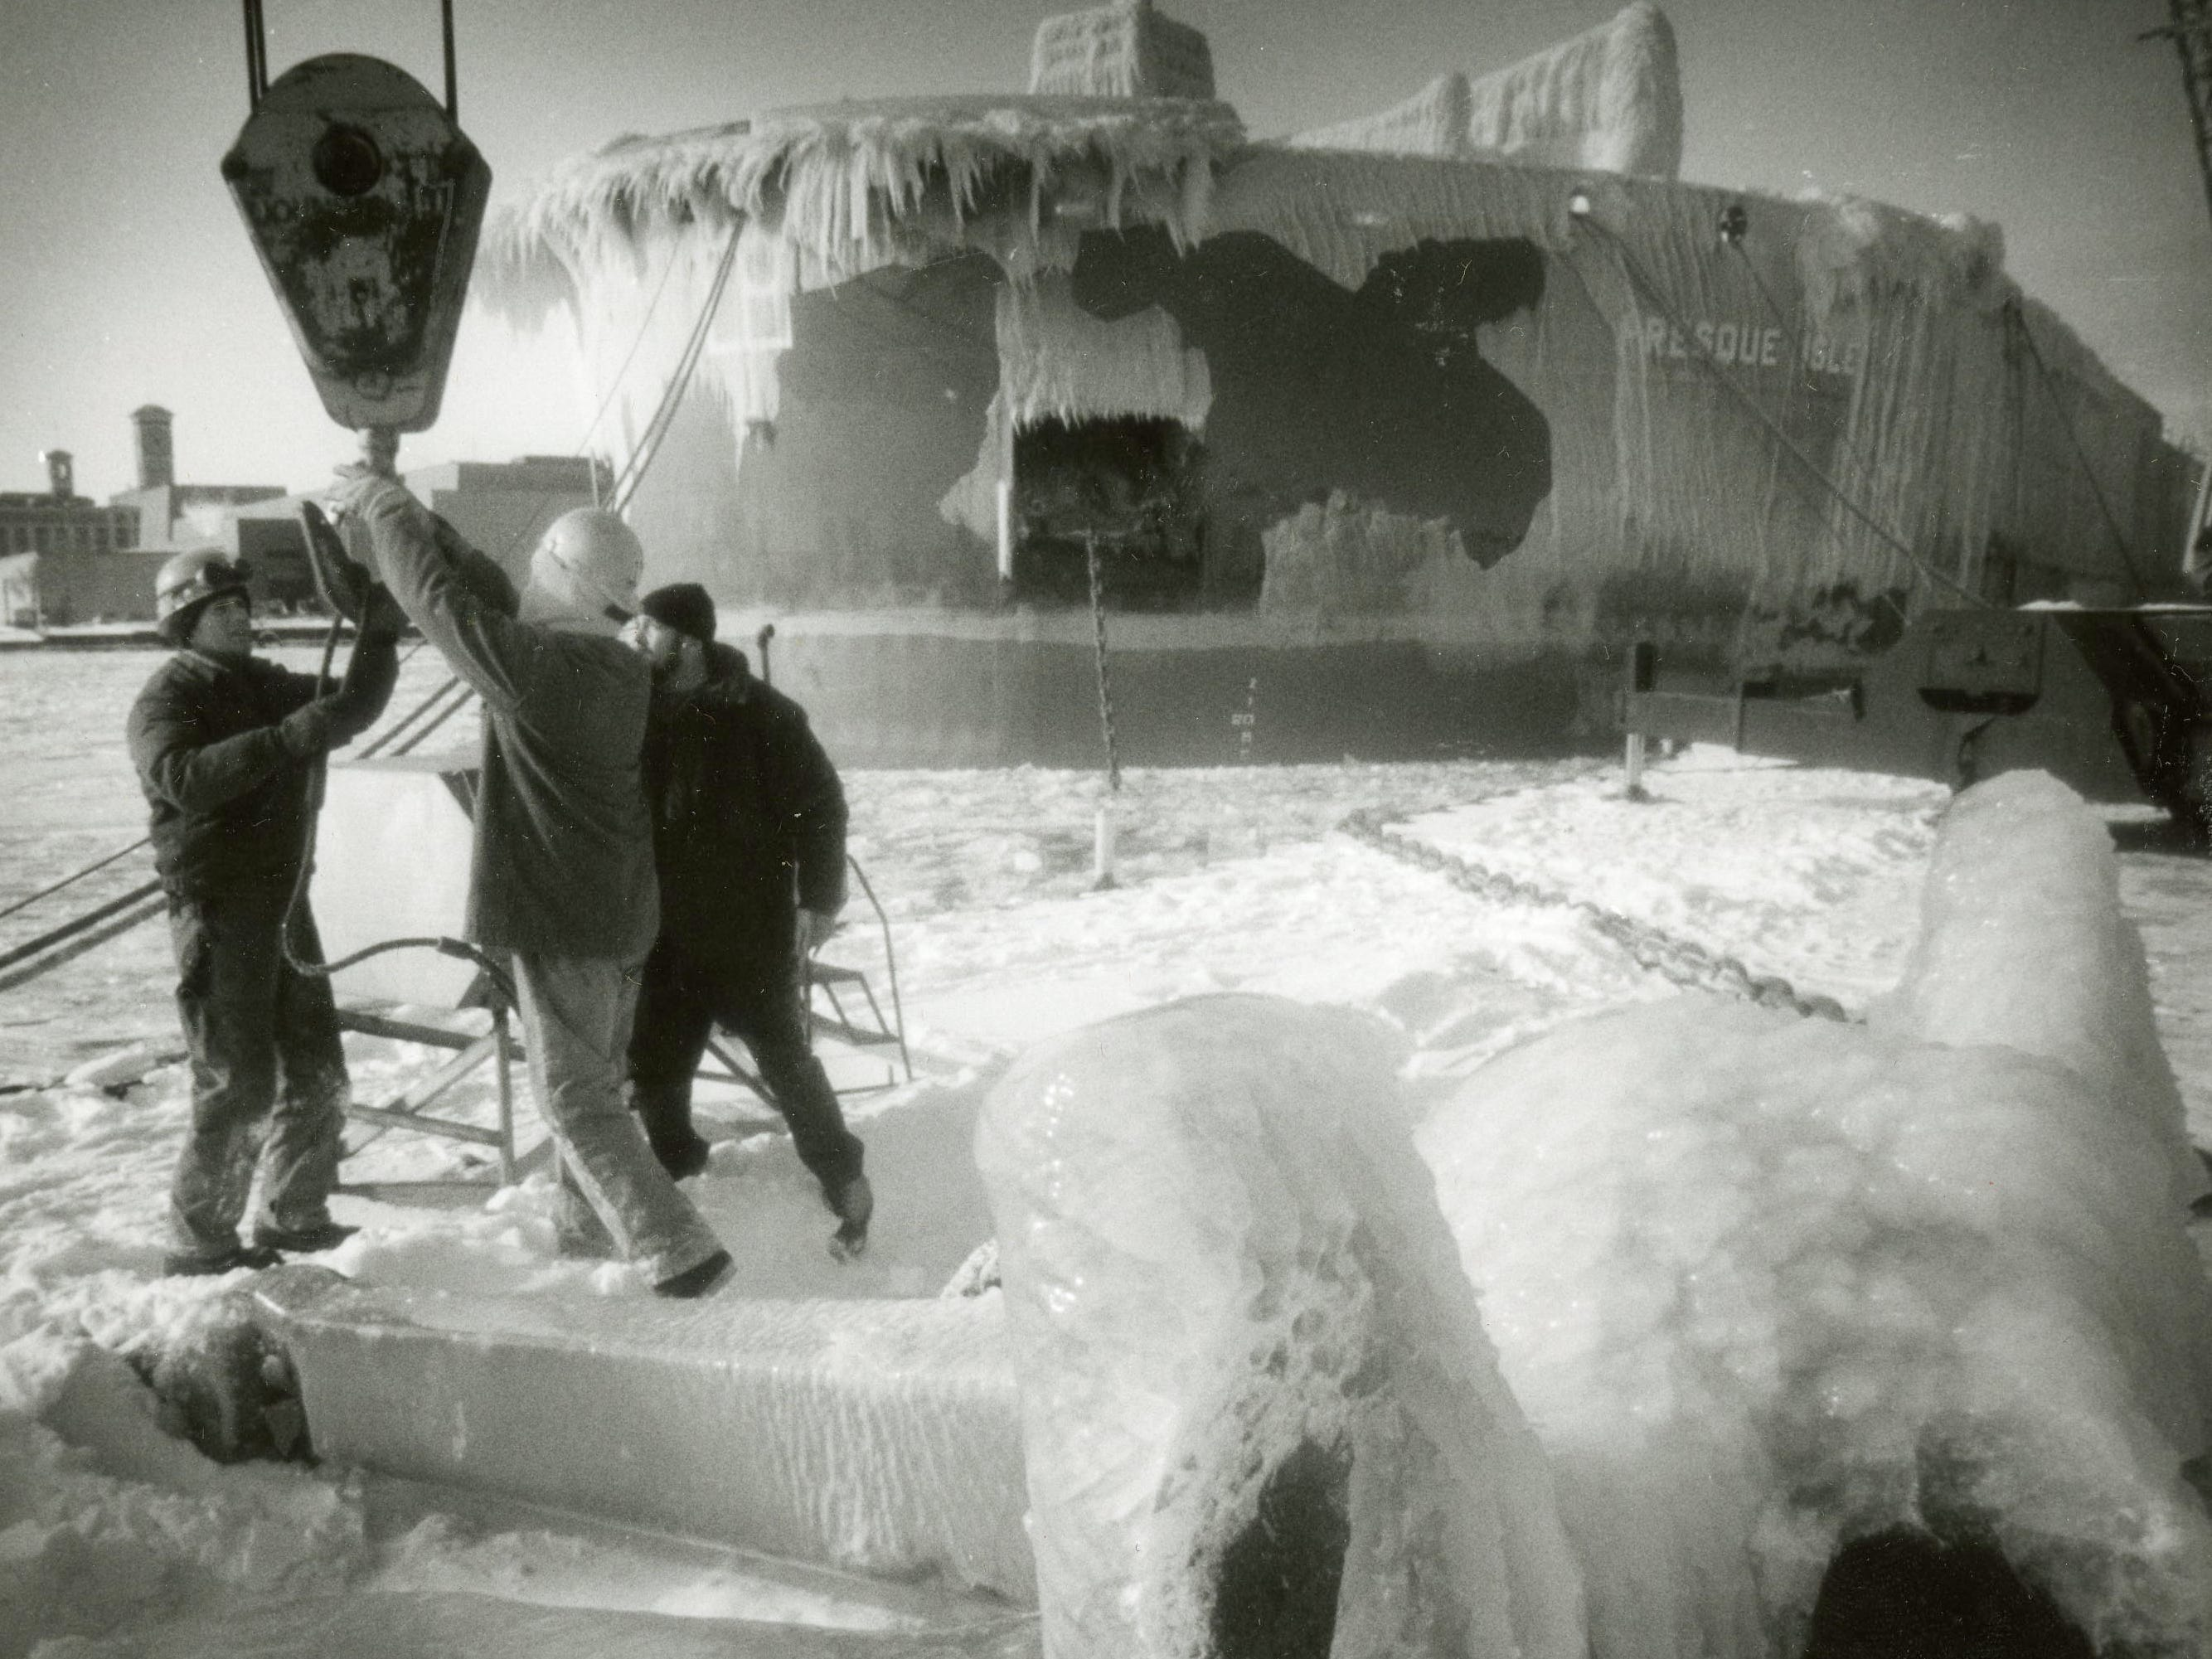 Dock workers set the anchor and lines for the freighter Presque Isle at a dock on Jones Island in Milwaukee in January 1994. Milwaukee area temperatures reached 21 below zero that month. This photo was published in the Jan. 30, 1994, Milwaukee Journal.